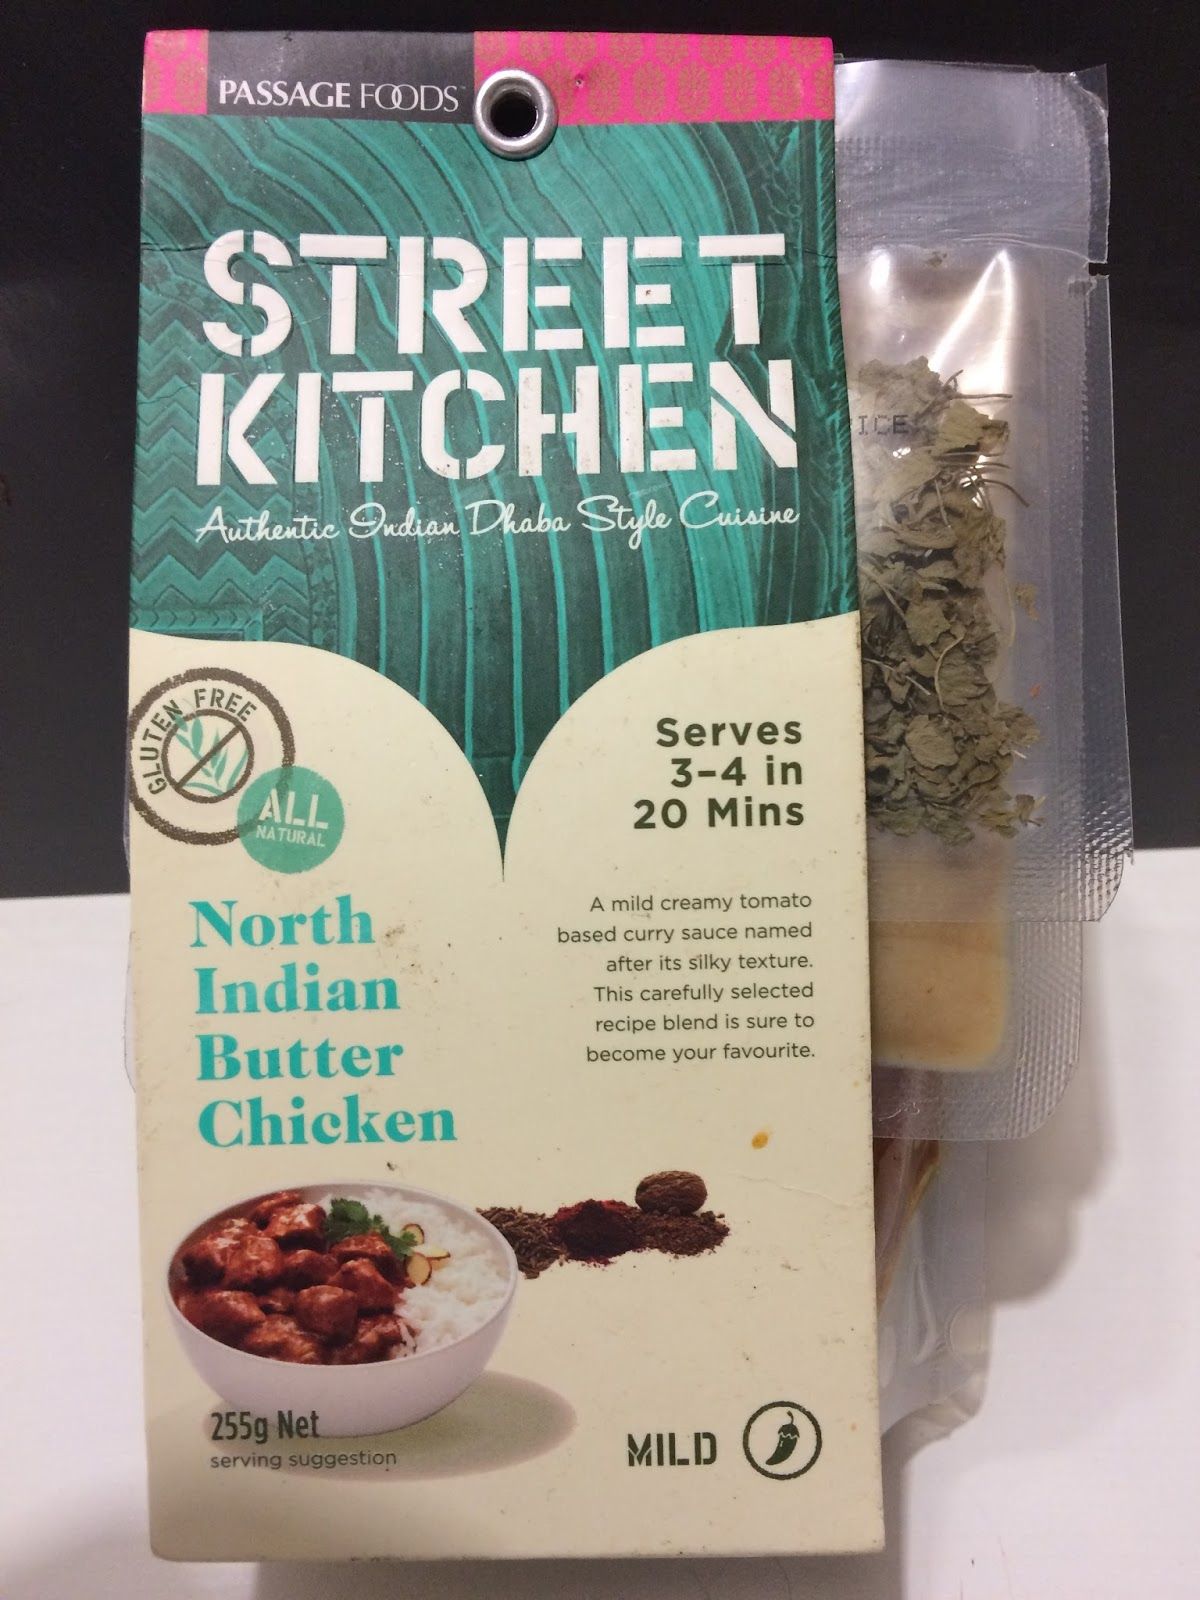 apocalypseequipped: review: street kitchen spice set